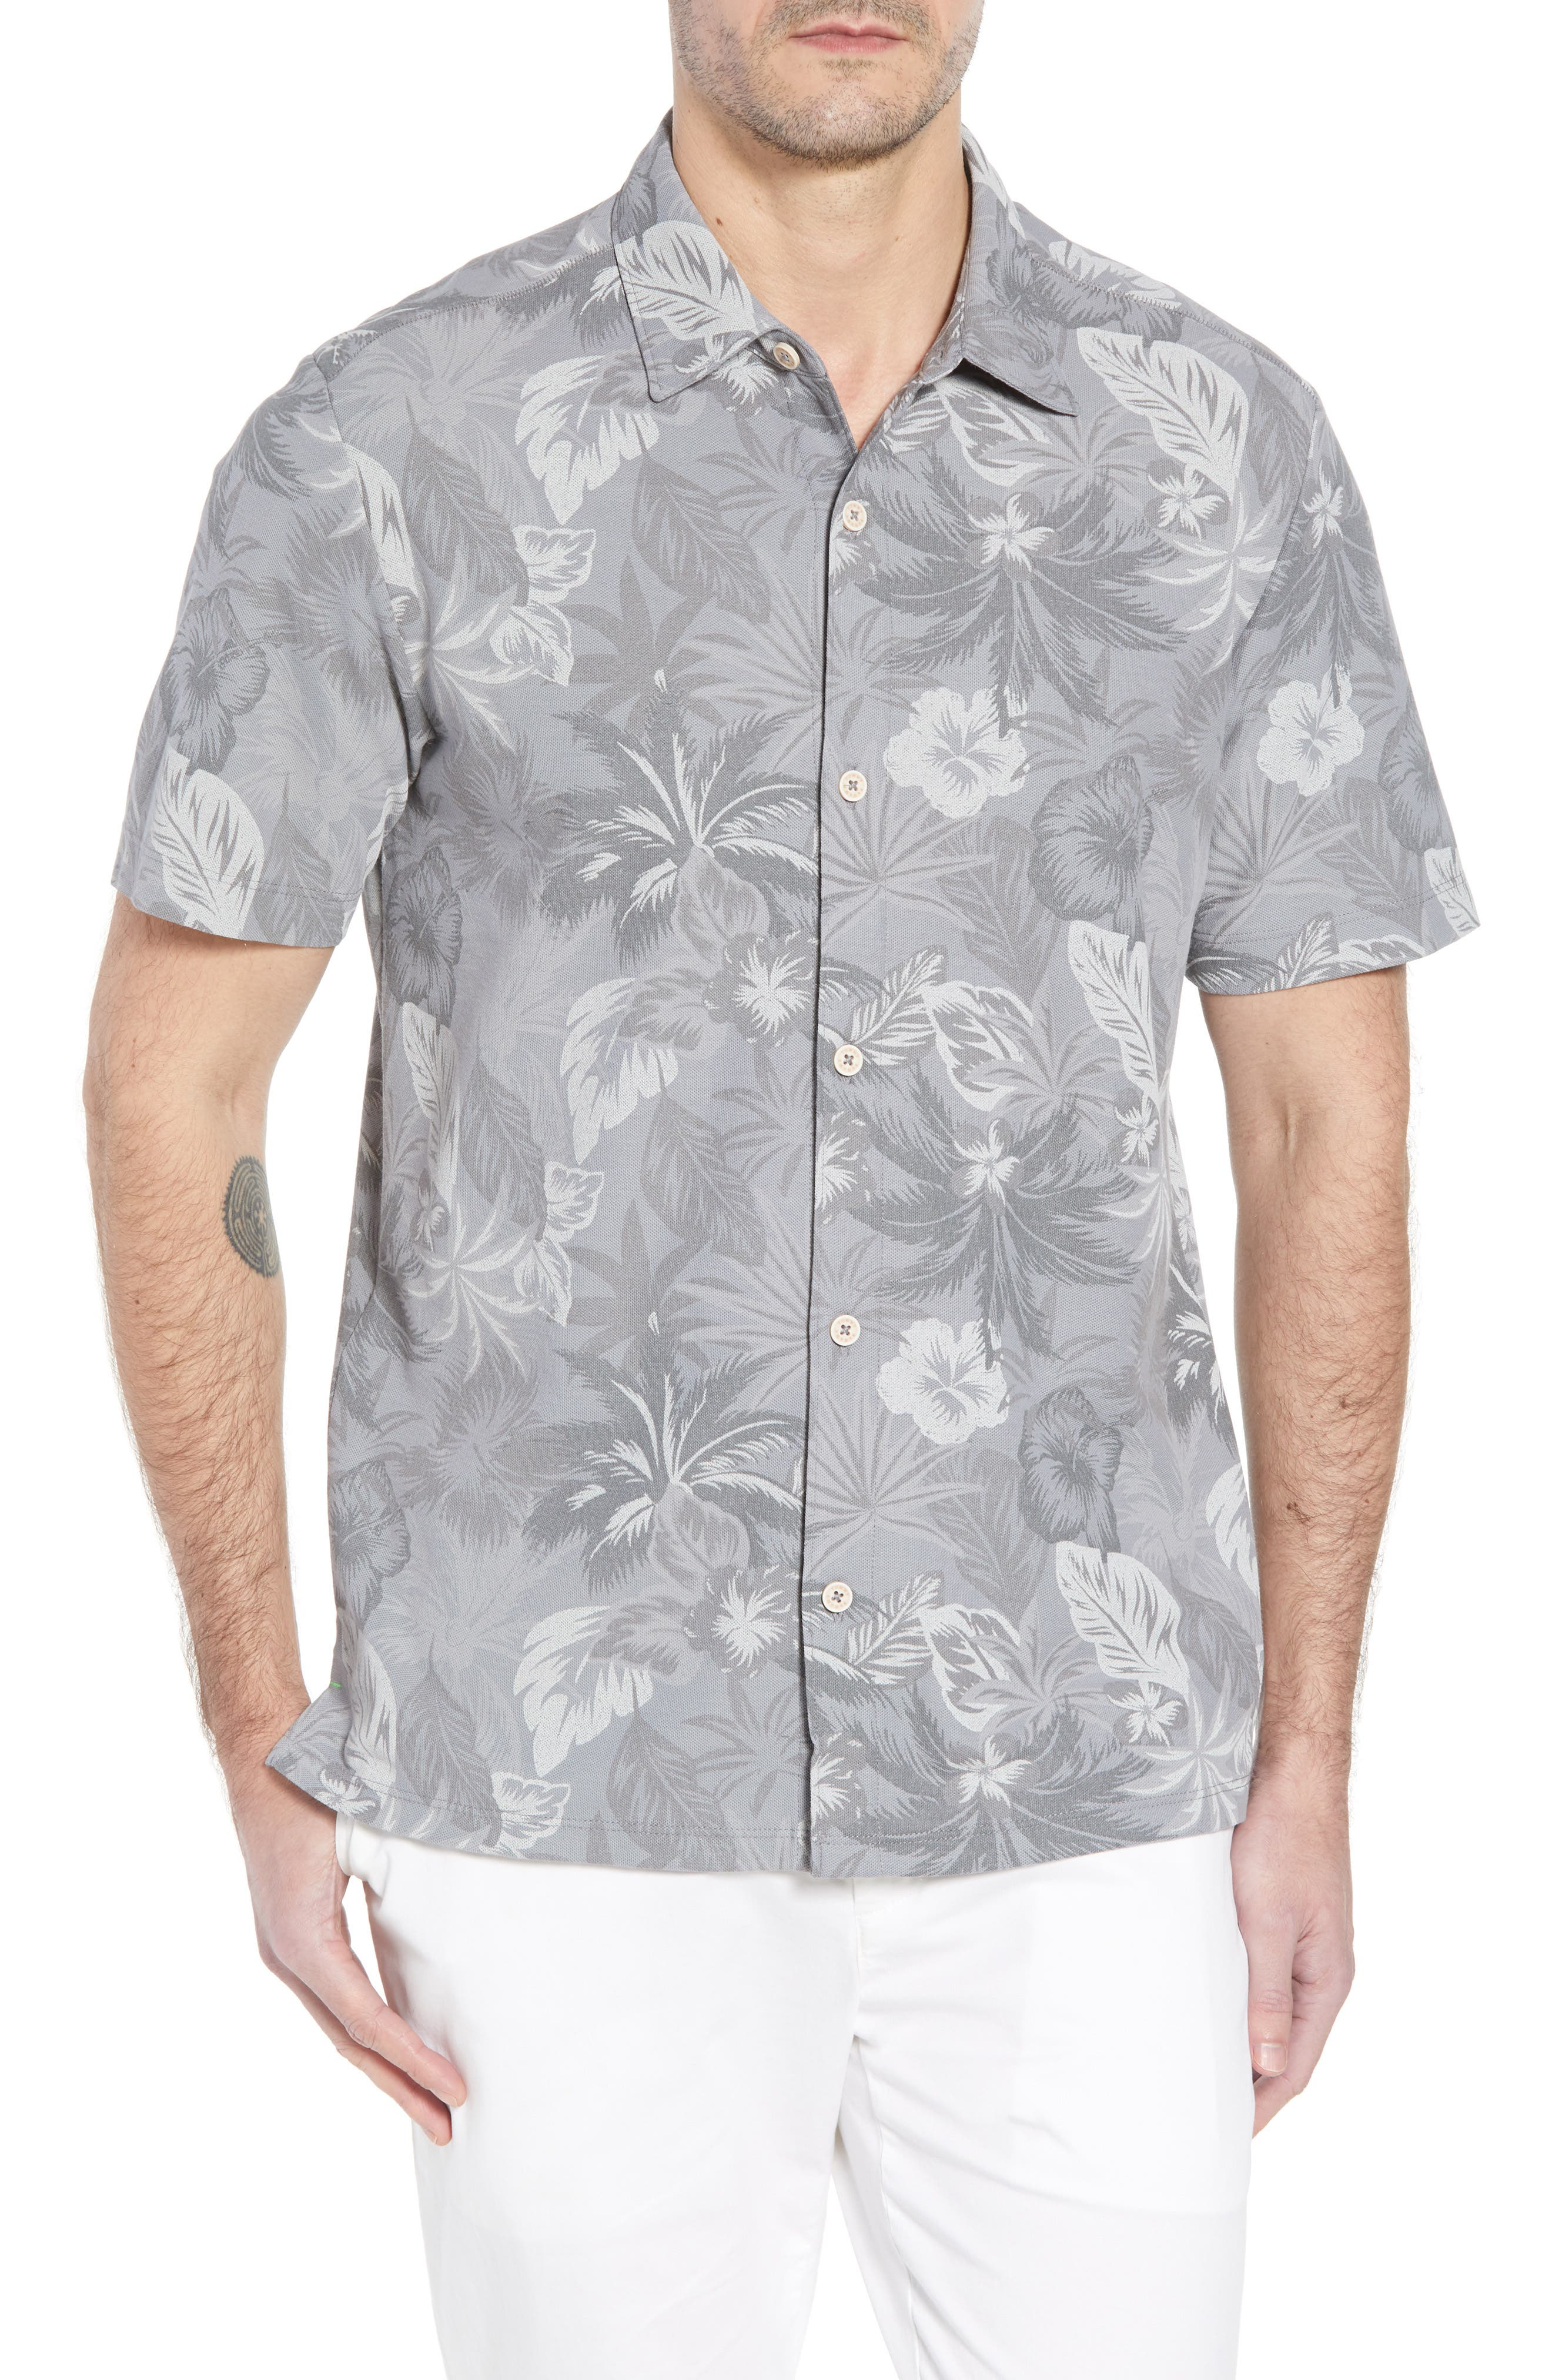 Fuego Floral Camp Shirt,                             Main thumbnail 1, color,                             050